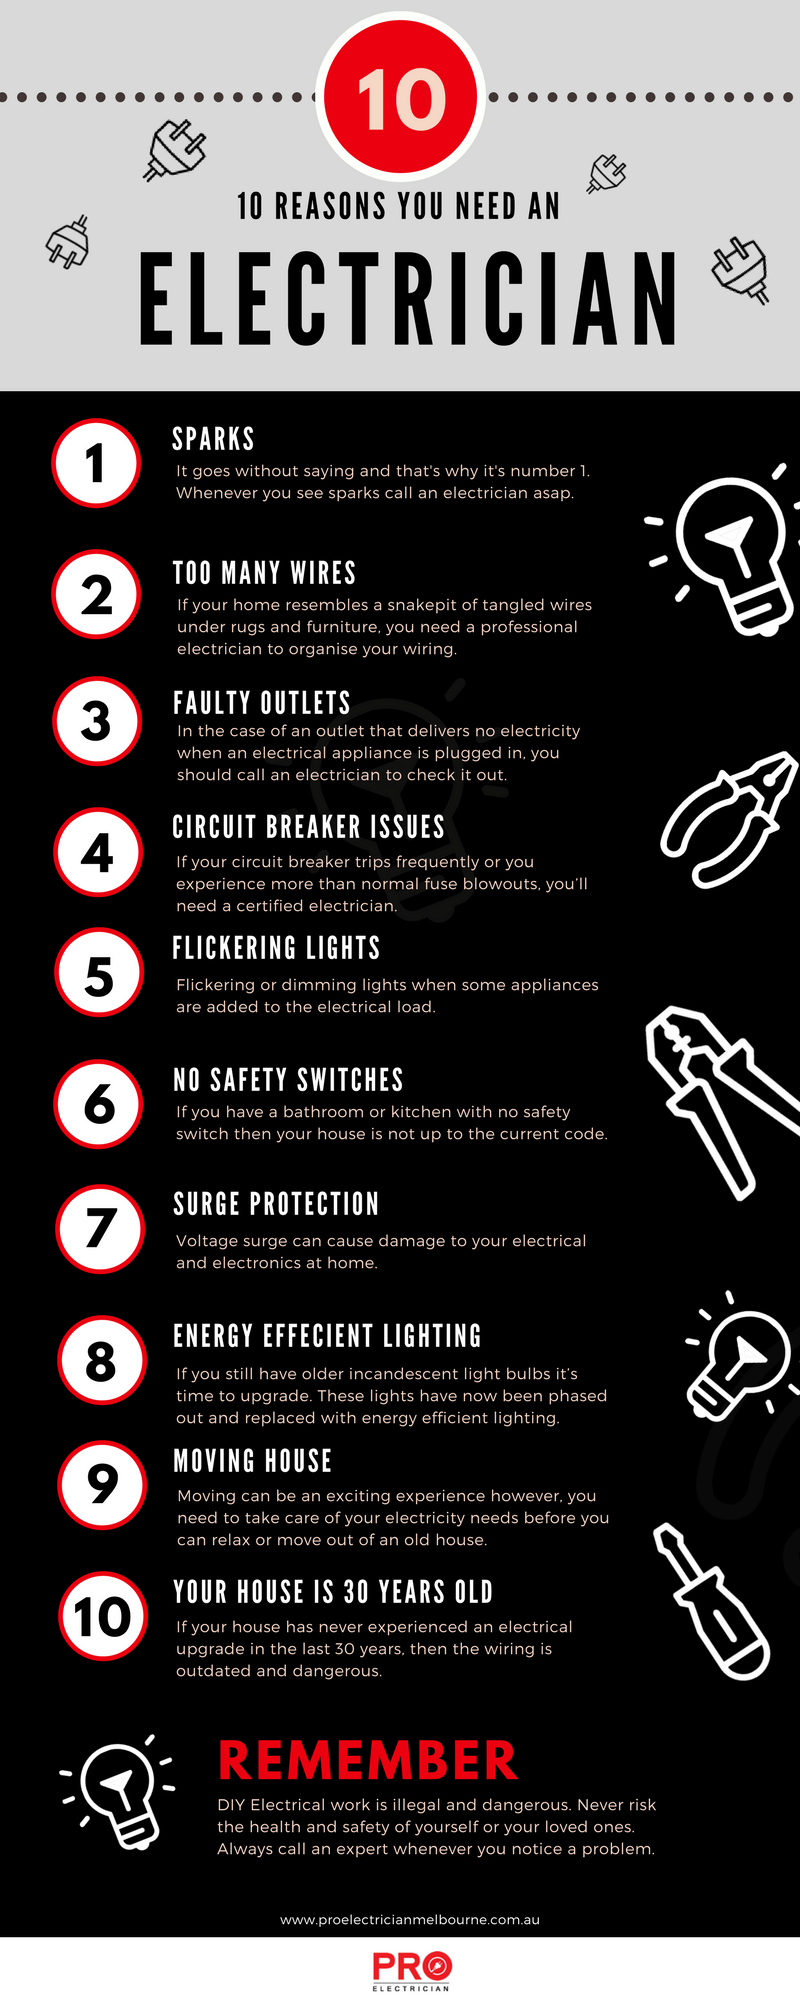 10 Reasons To Call An Electrician By Jones Electrical Services Ltd